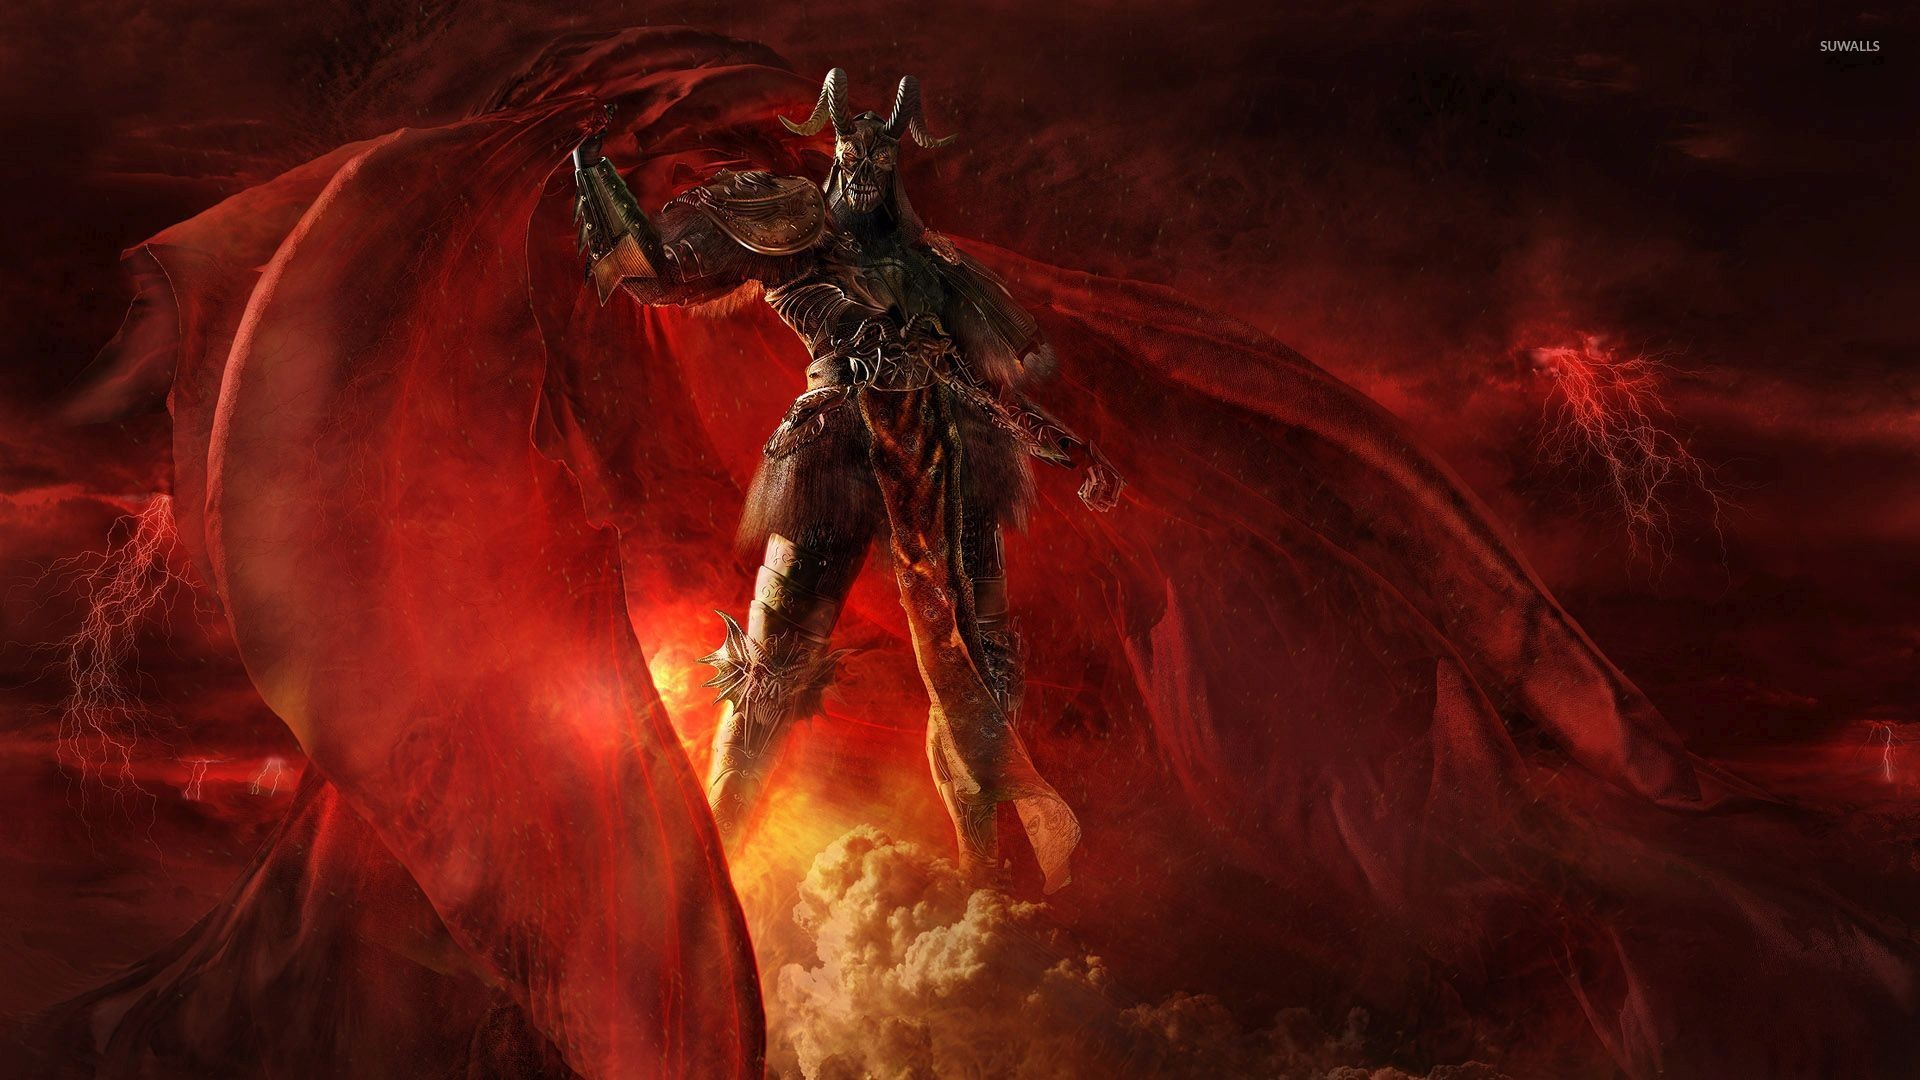 Res: 1920x1080, Scary demon in hell wallpaper